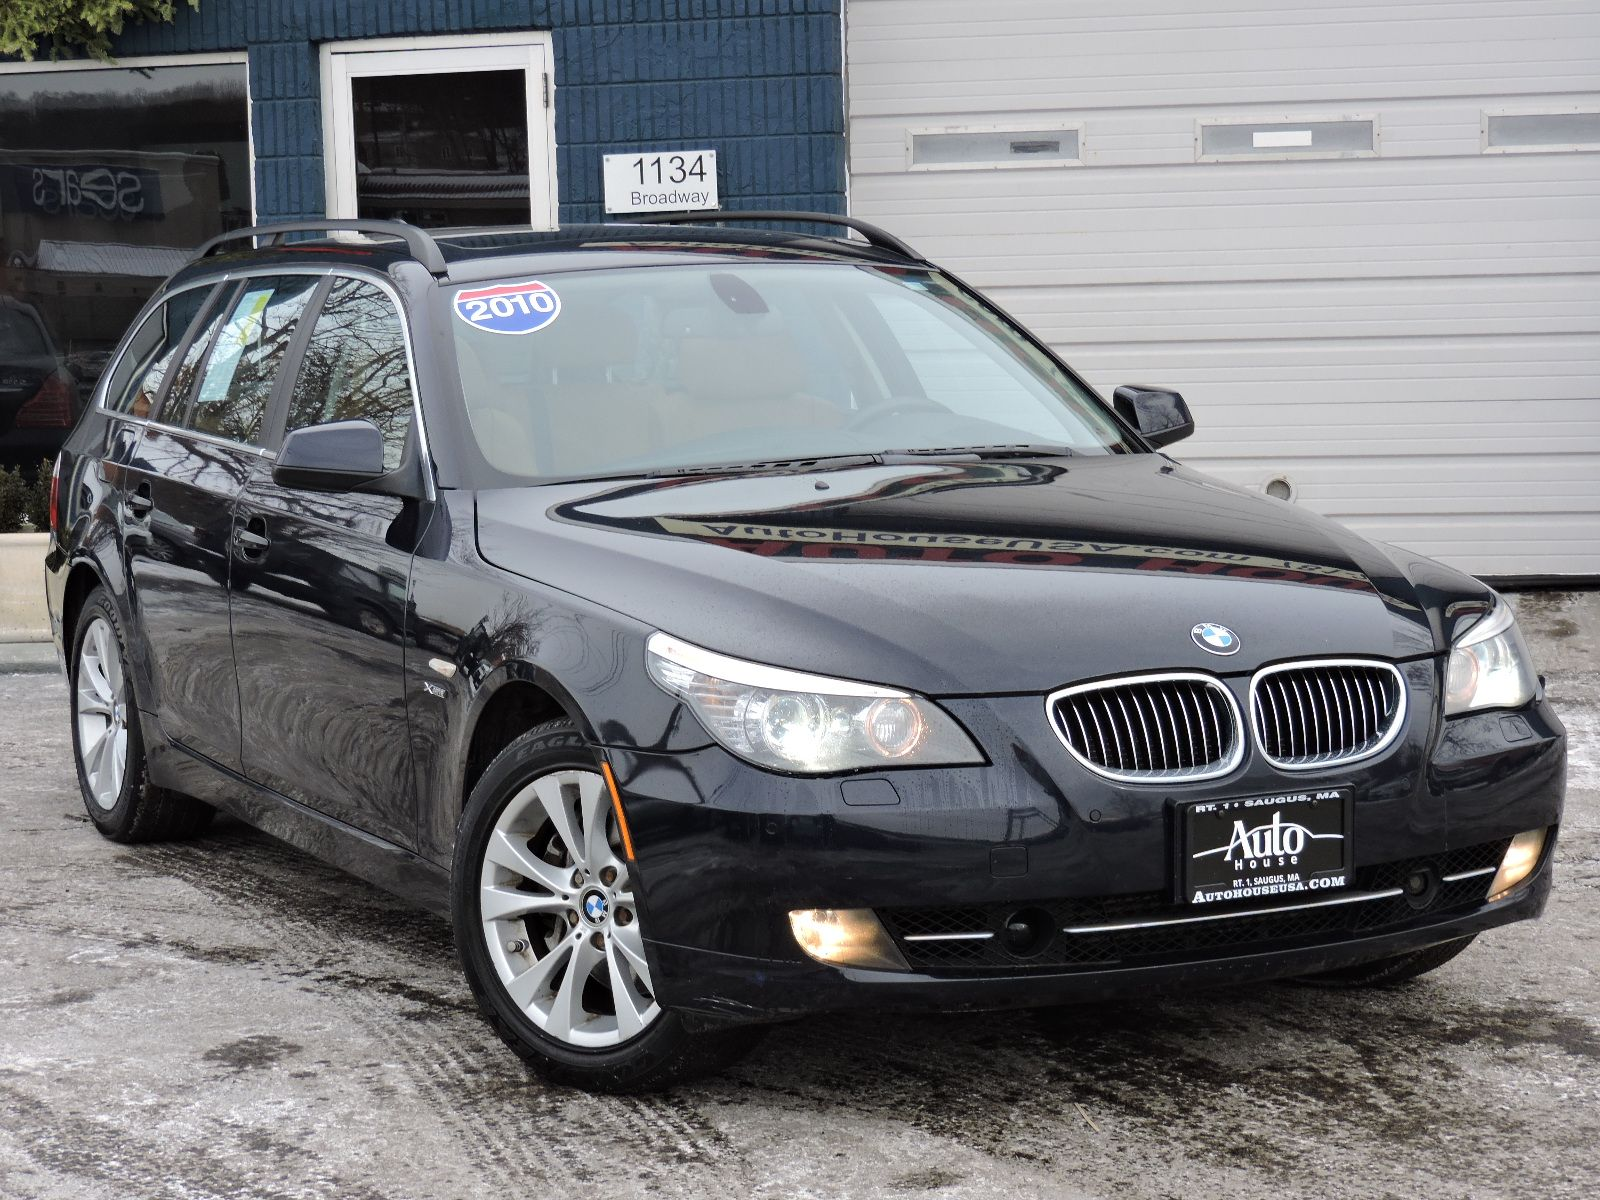 2010 bmw 535i xdrive wagon the wagon. Black Bedroom Furniture Sets. Home Design Ideas